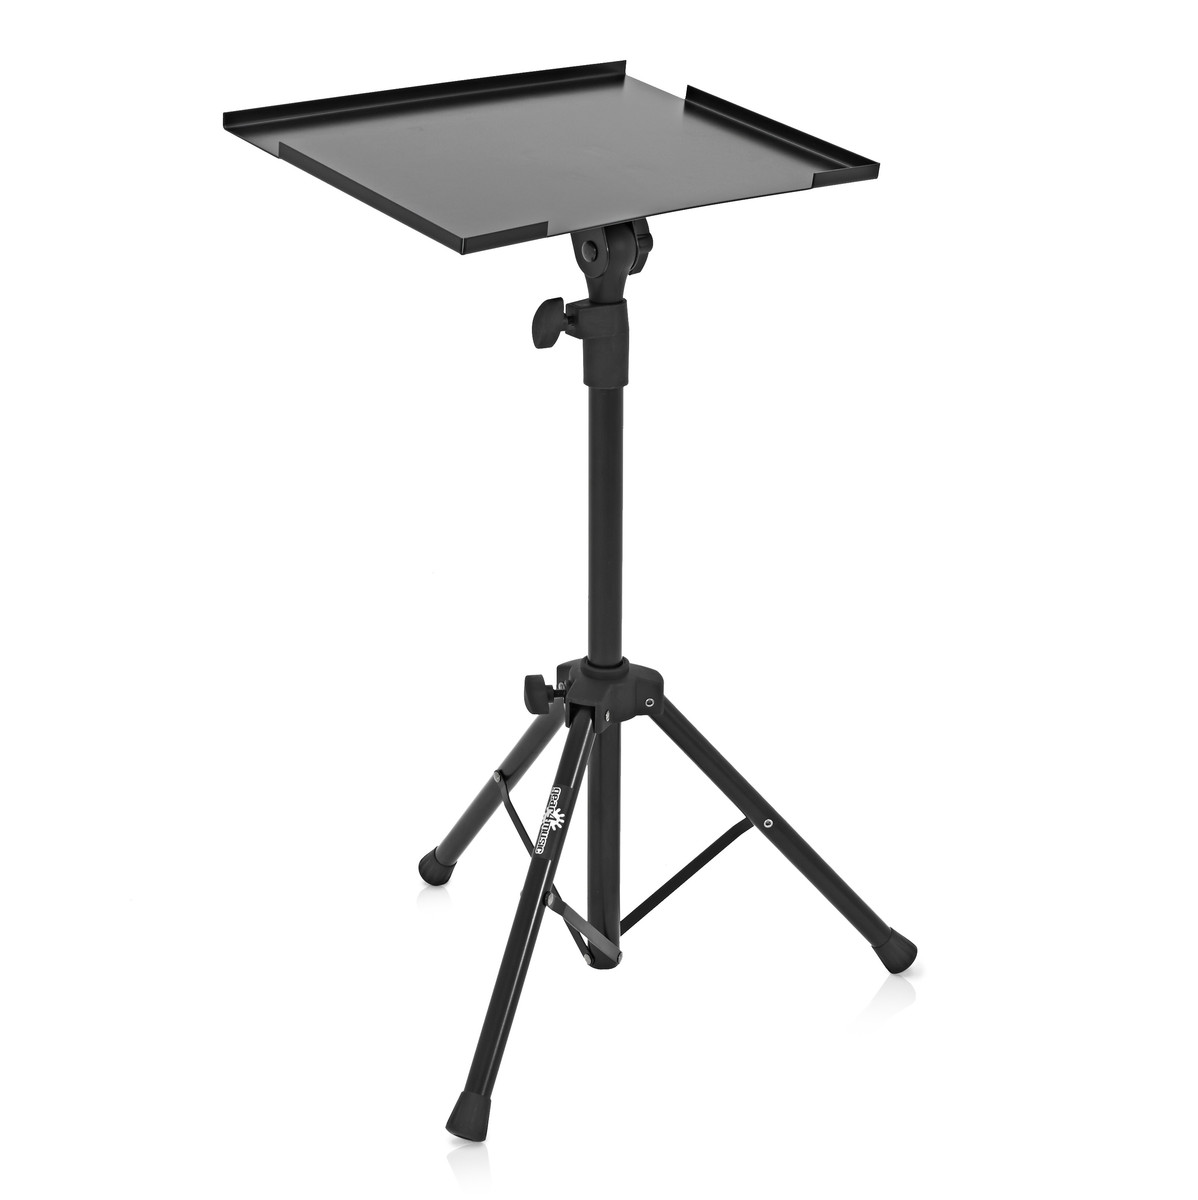 Image of Adjustable Laptop Stand by Gear4music